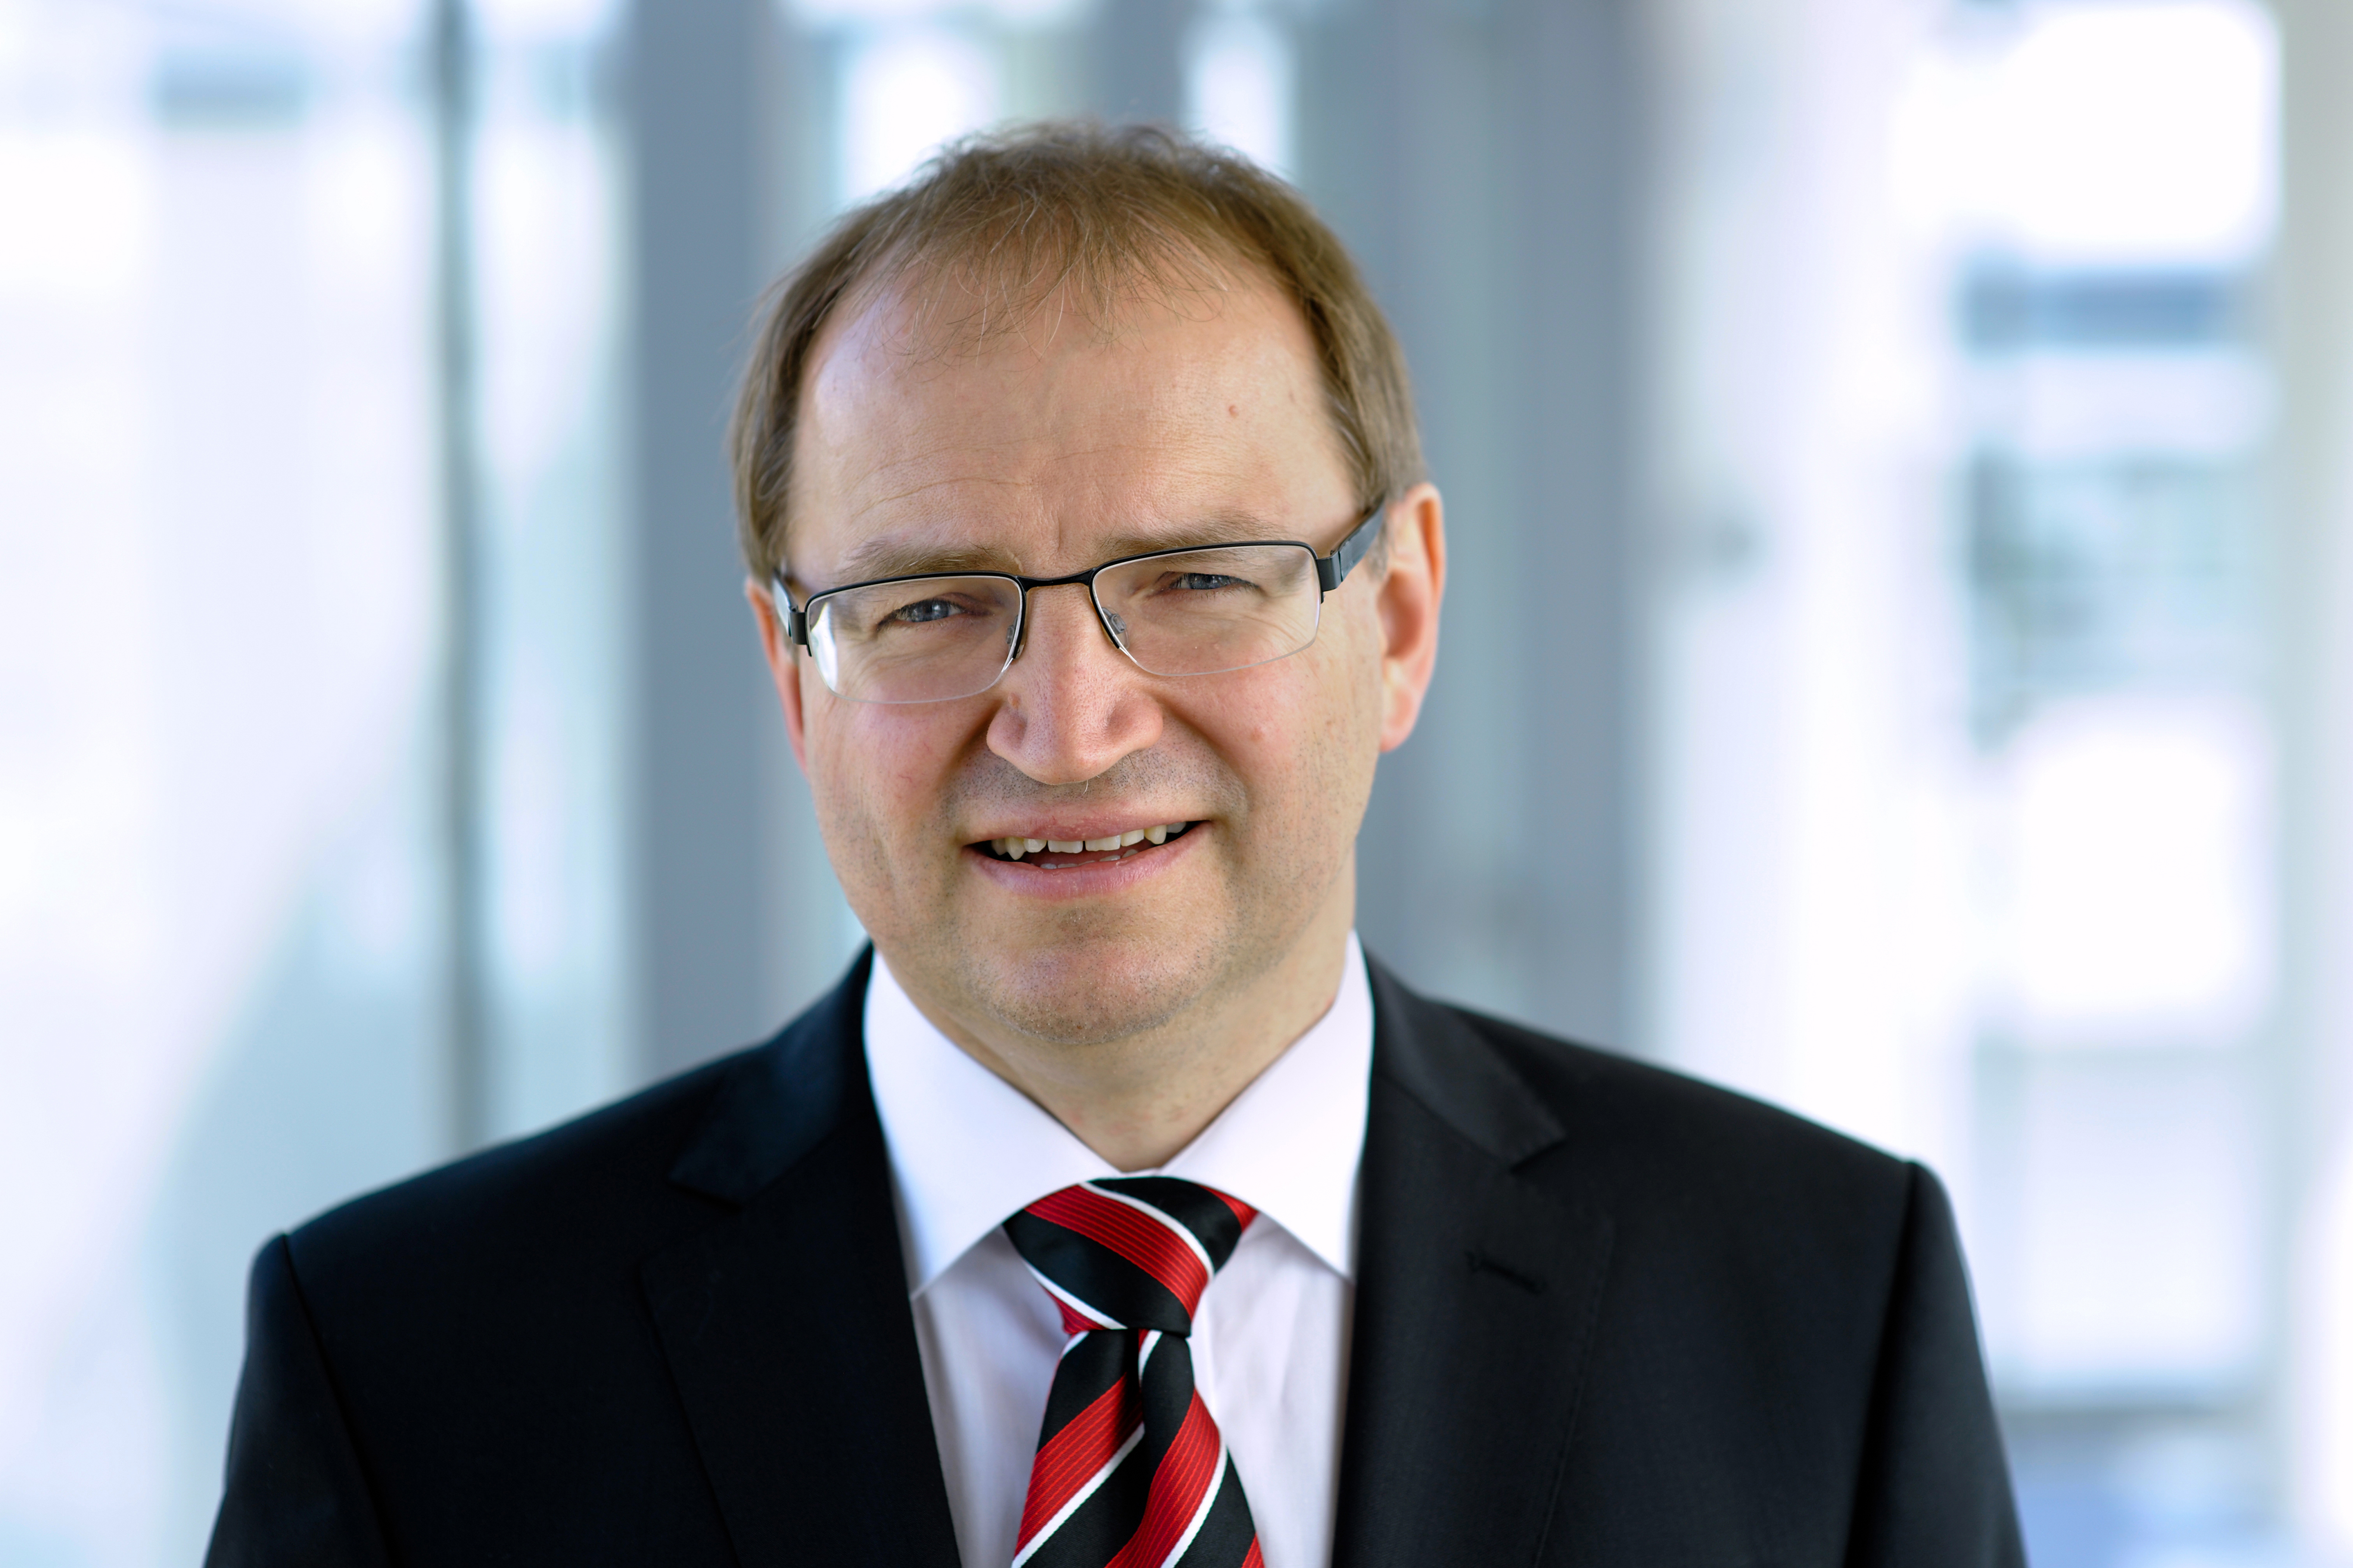 Dr. Bernhard Grill, director of Fraunhofer IIS with focus on Audio & Multimedia